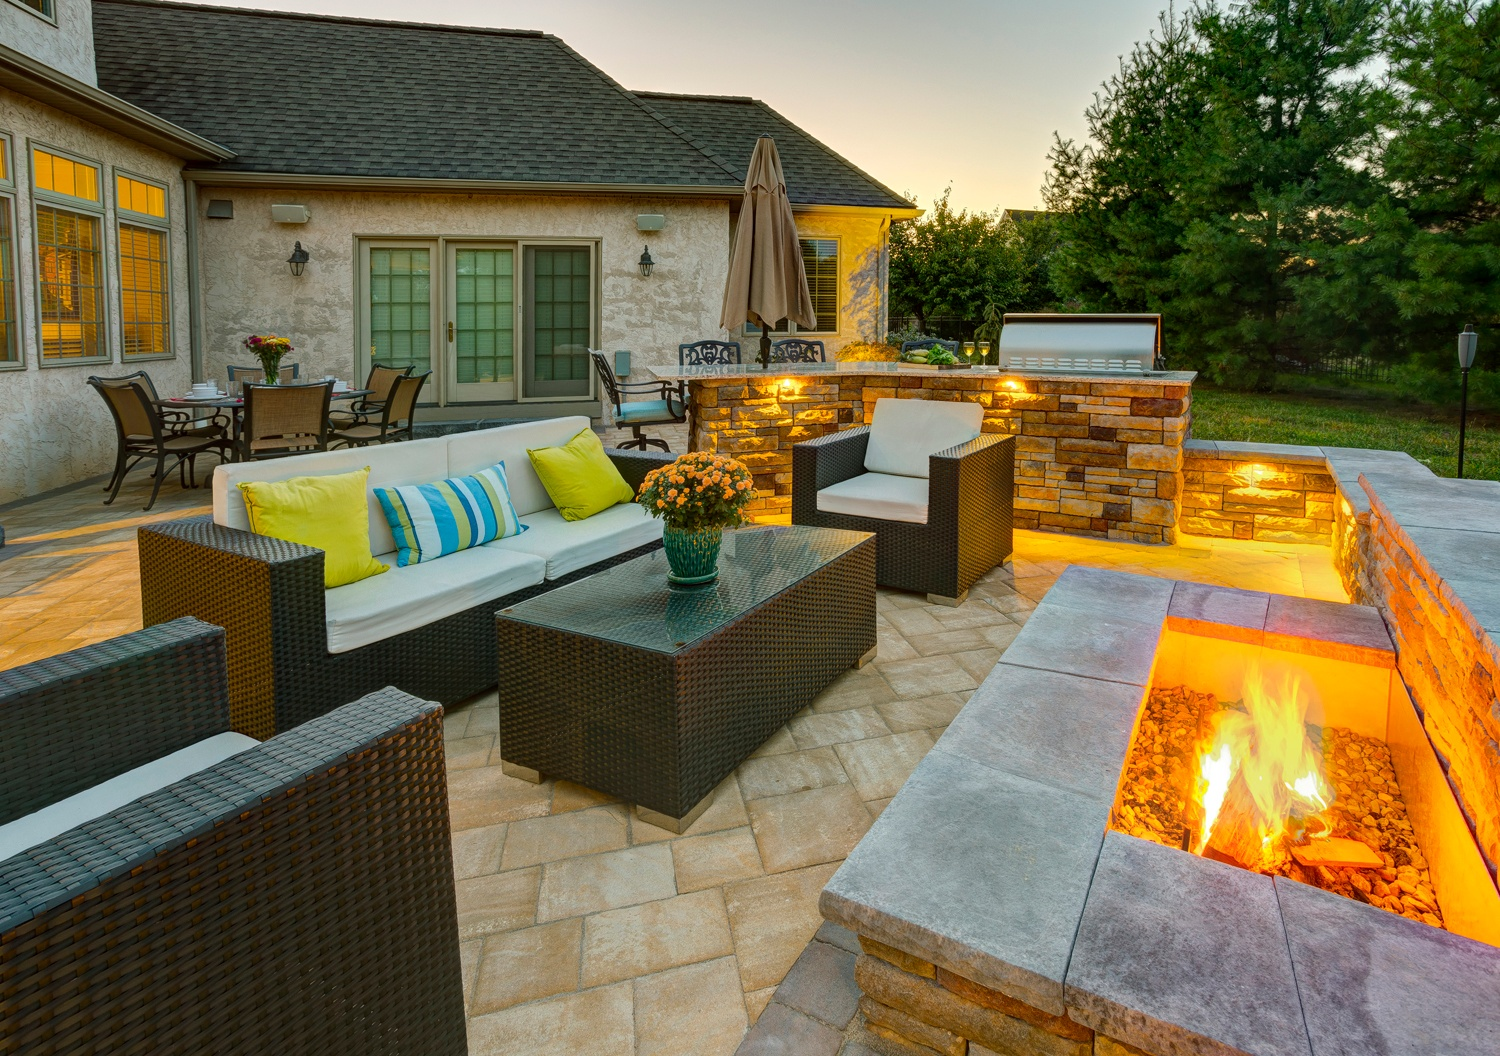 Fire pit contractors in Lancaster, PA, Reading, York, Hershey and Lebanon.